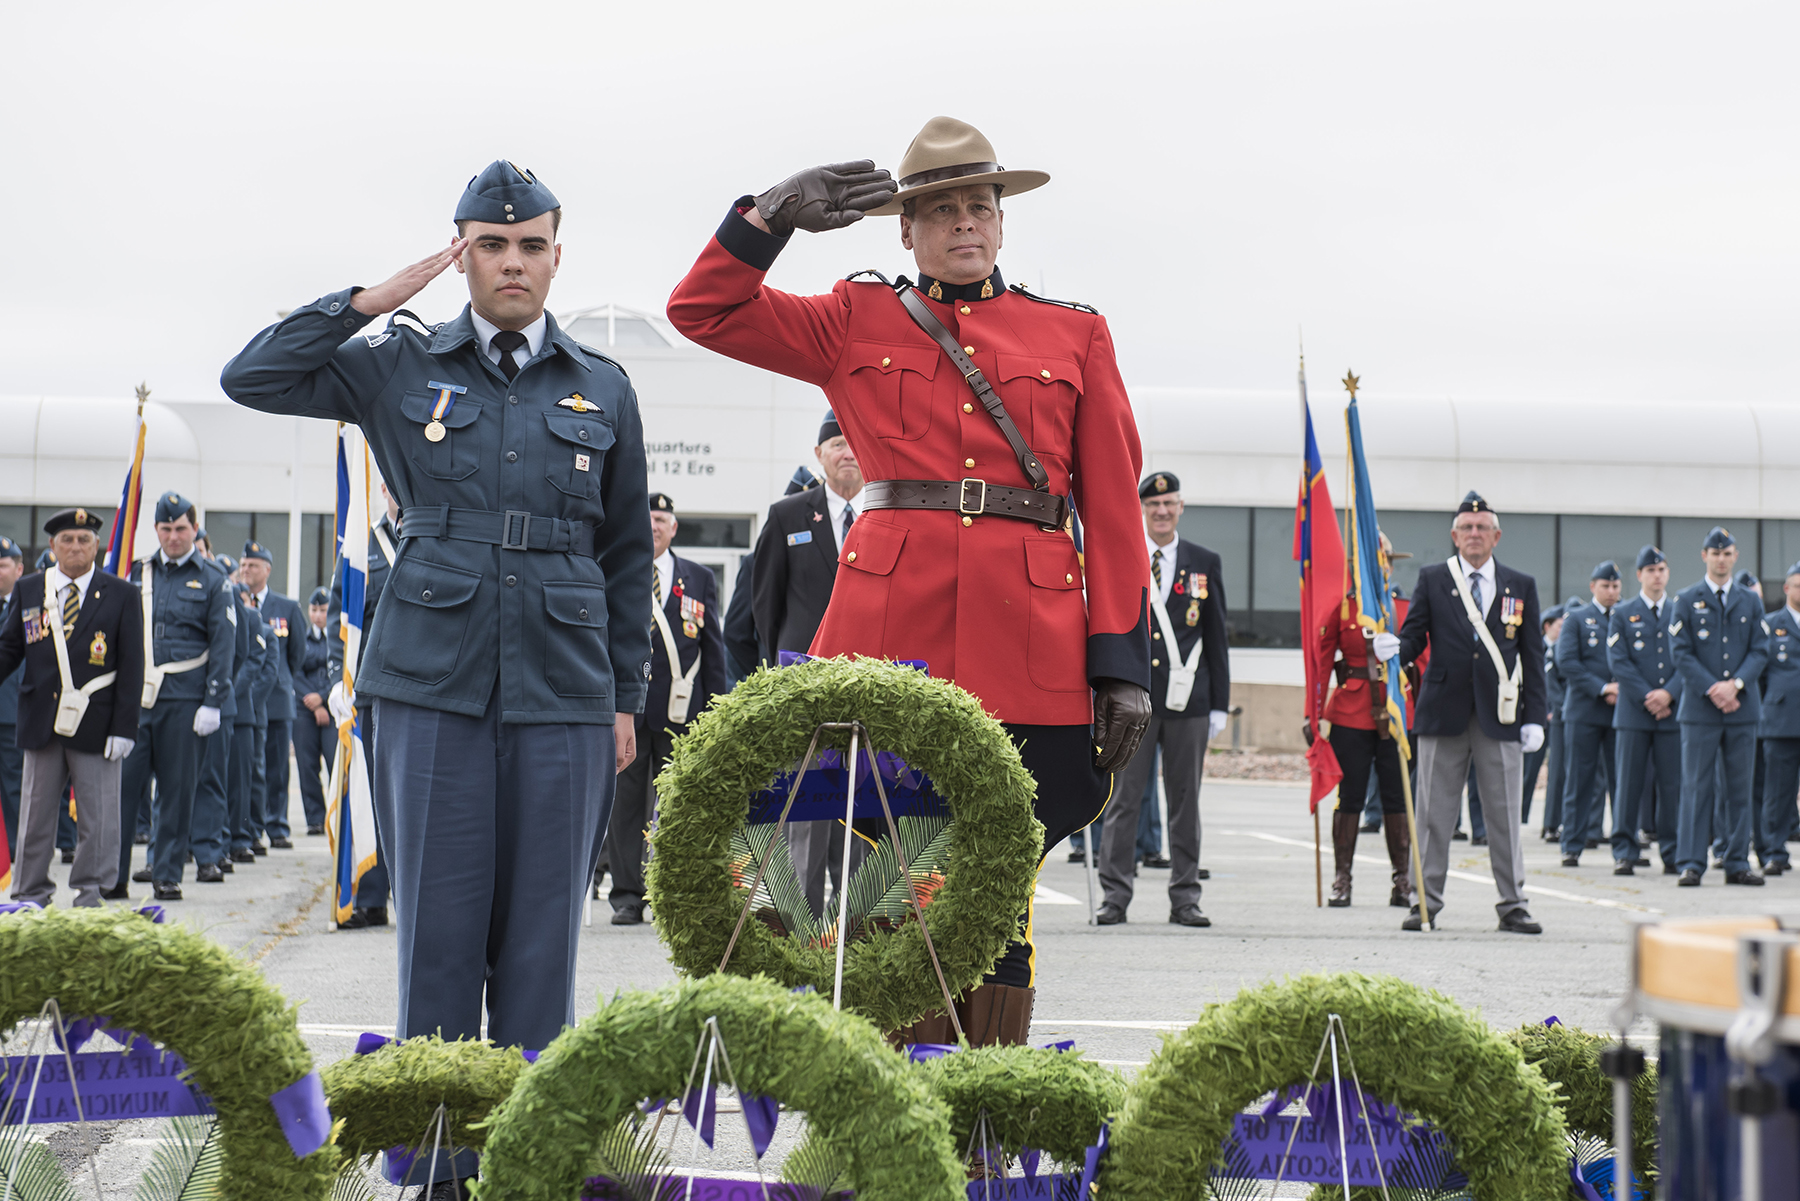 Inspector Jason Popik (right), Halifax District Royal Canadian Mounted Police Operations Officer, accompanied by Flight Sergeant Greg Hannem, from 250 Vimy Royal Canadian Air Cadet Squadron, salutes after laying a wreath during the Battle of Britain ceremony held at 12 Wing Shearwater, Nova Scotia, on September 17, 2017. PHOTO: Corporal Anthony Laviolette, SW04-2017-0250-035